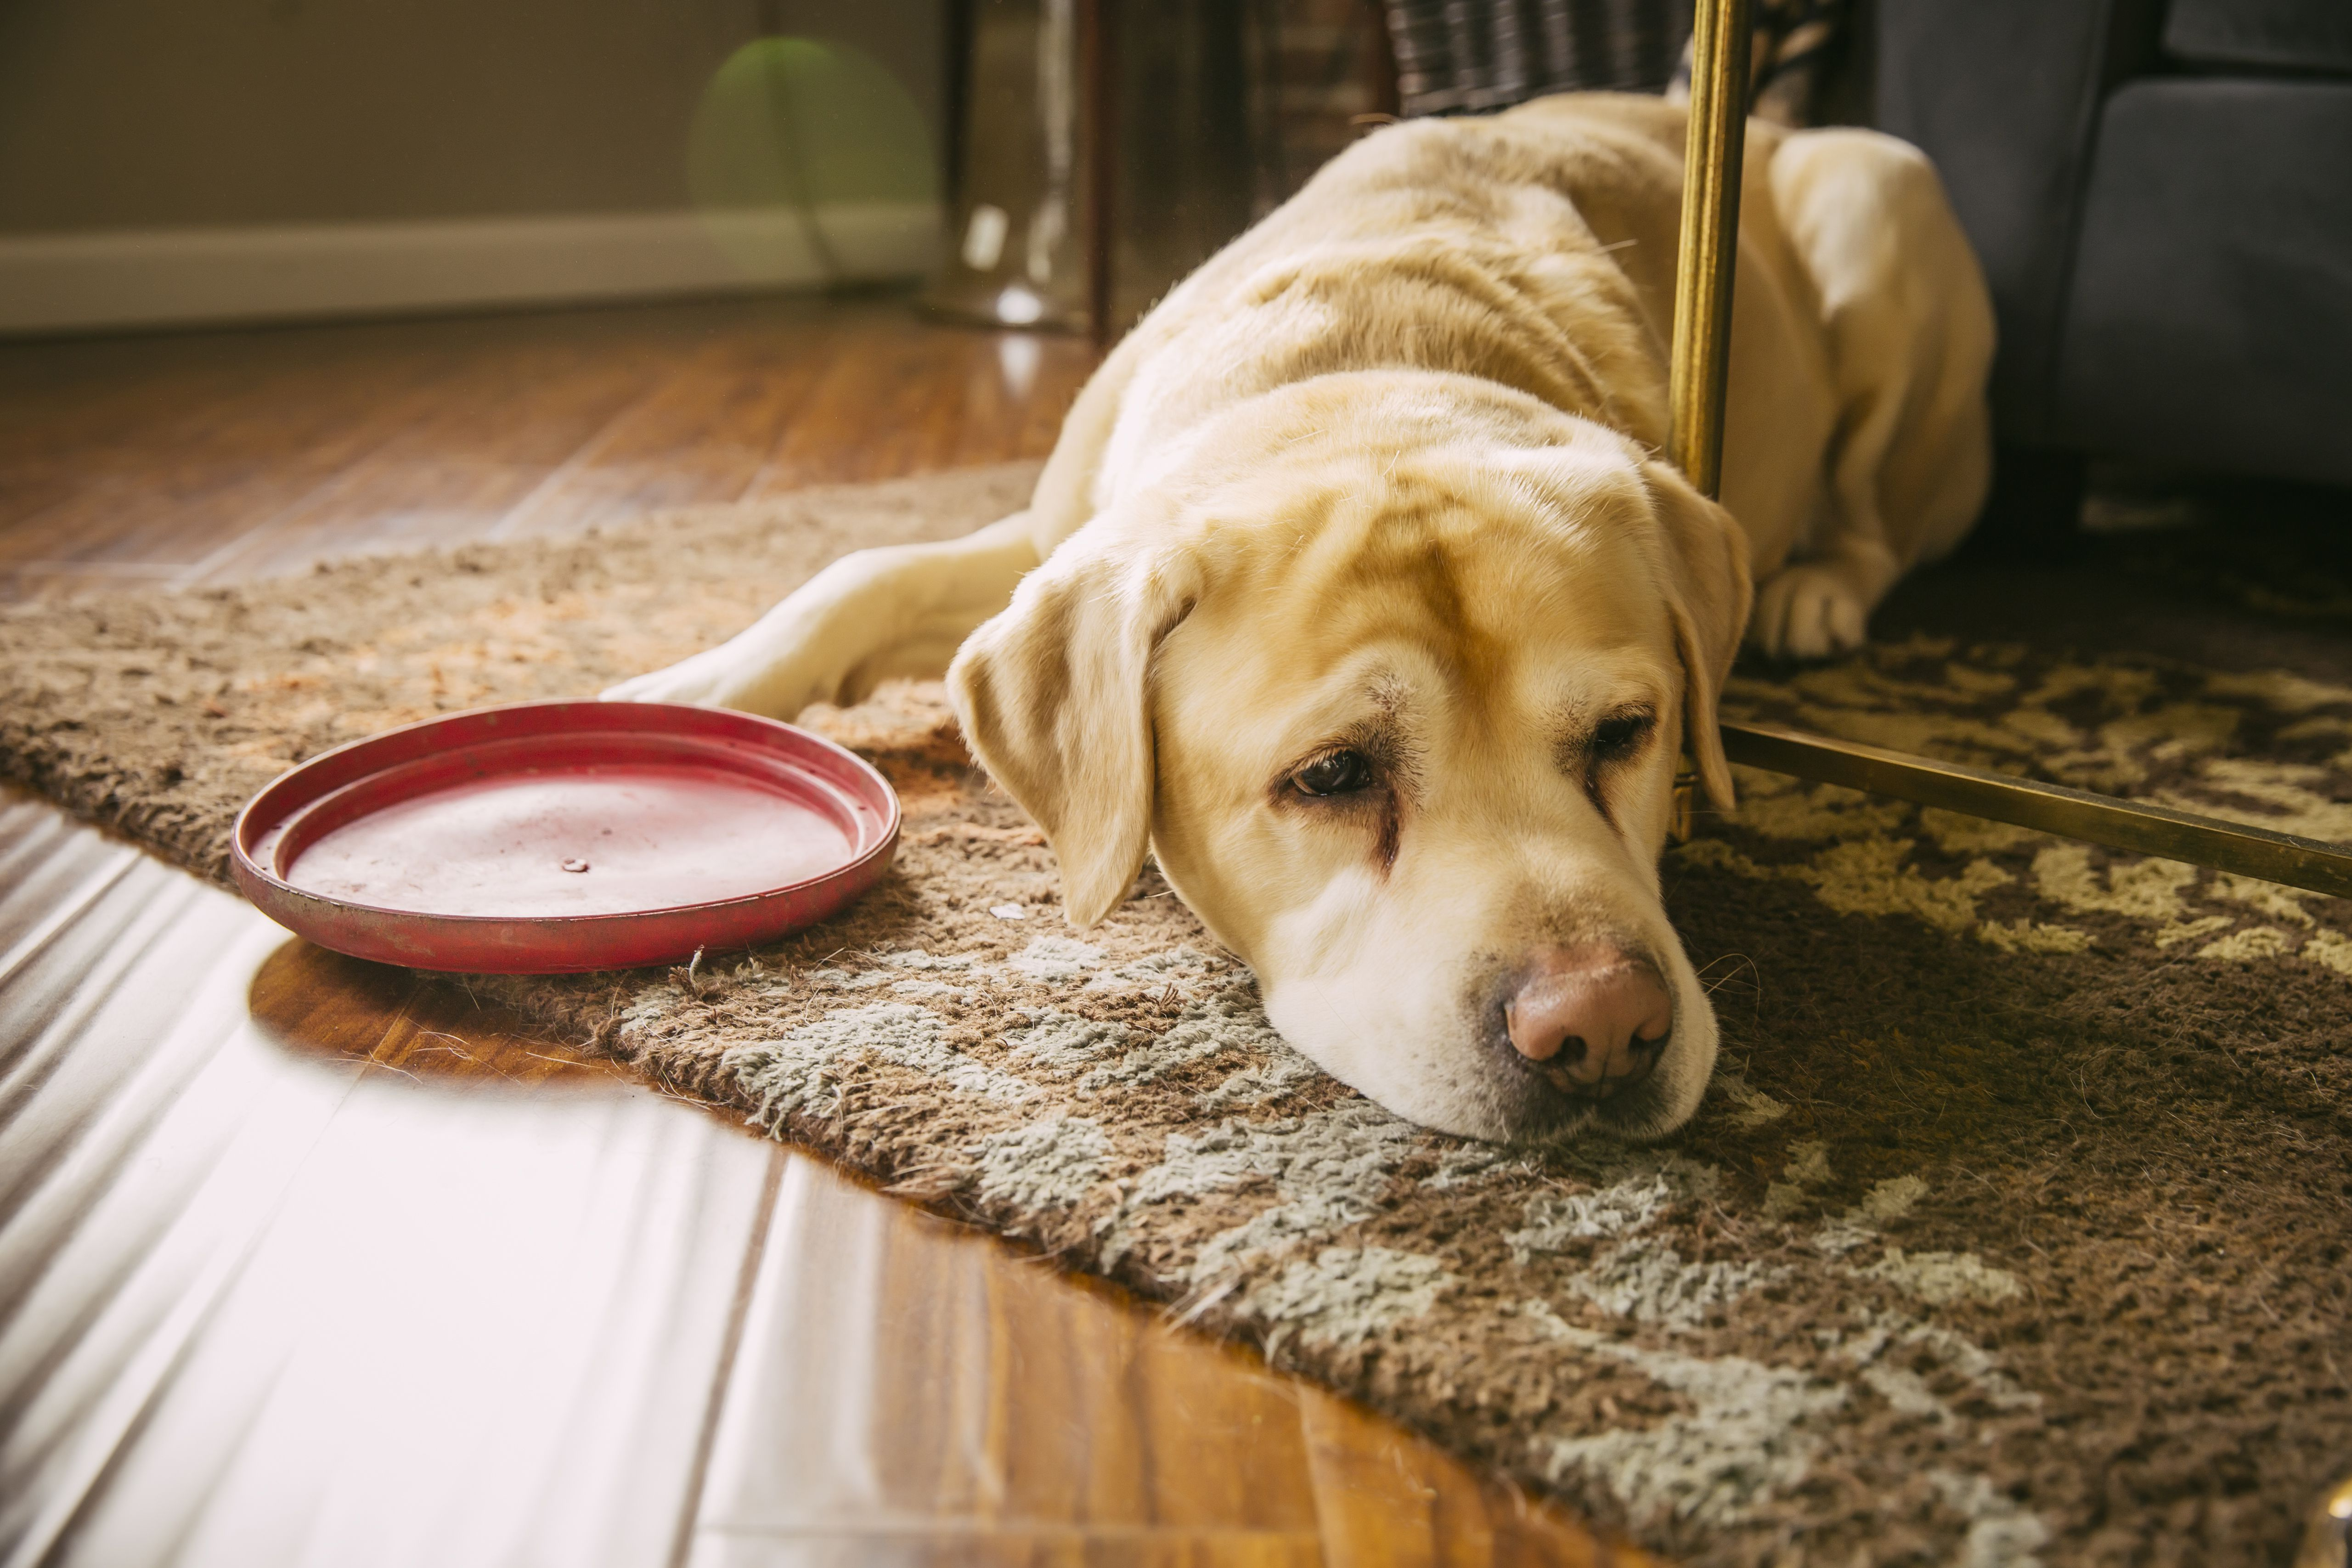 urinary problems in dogs are common